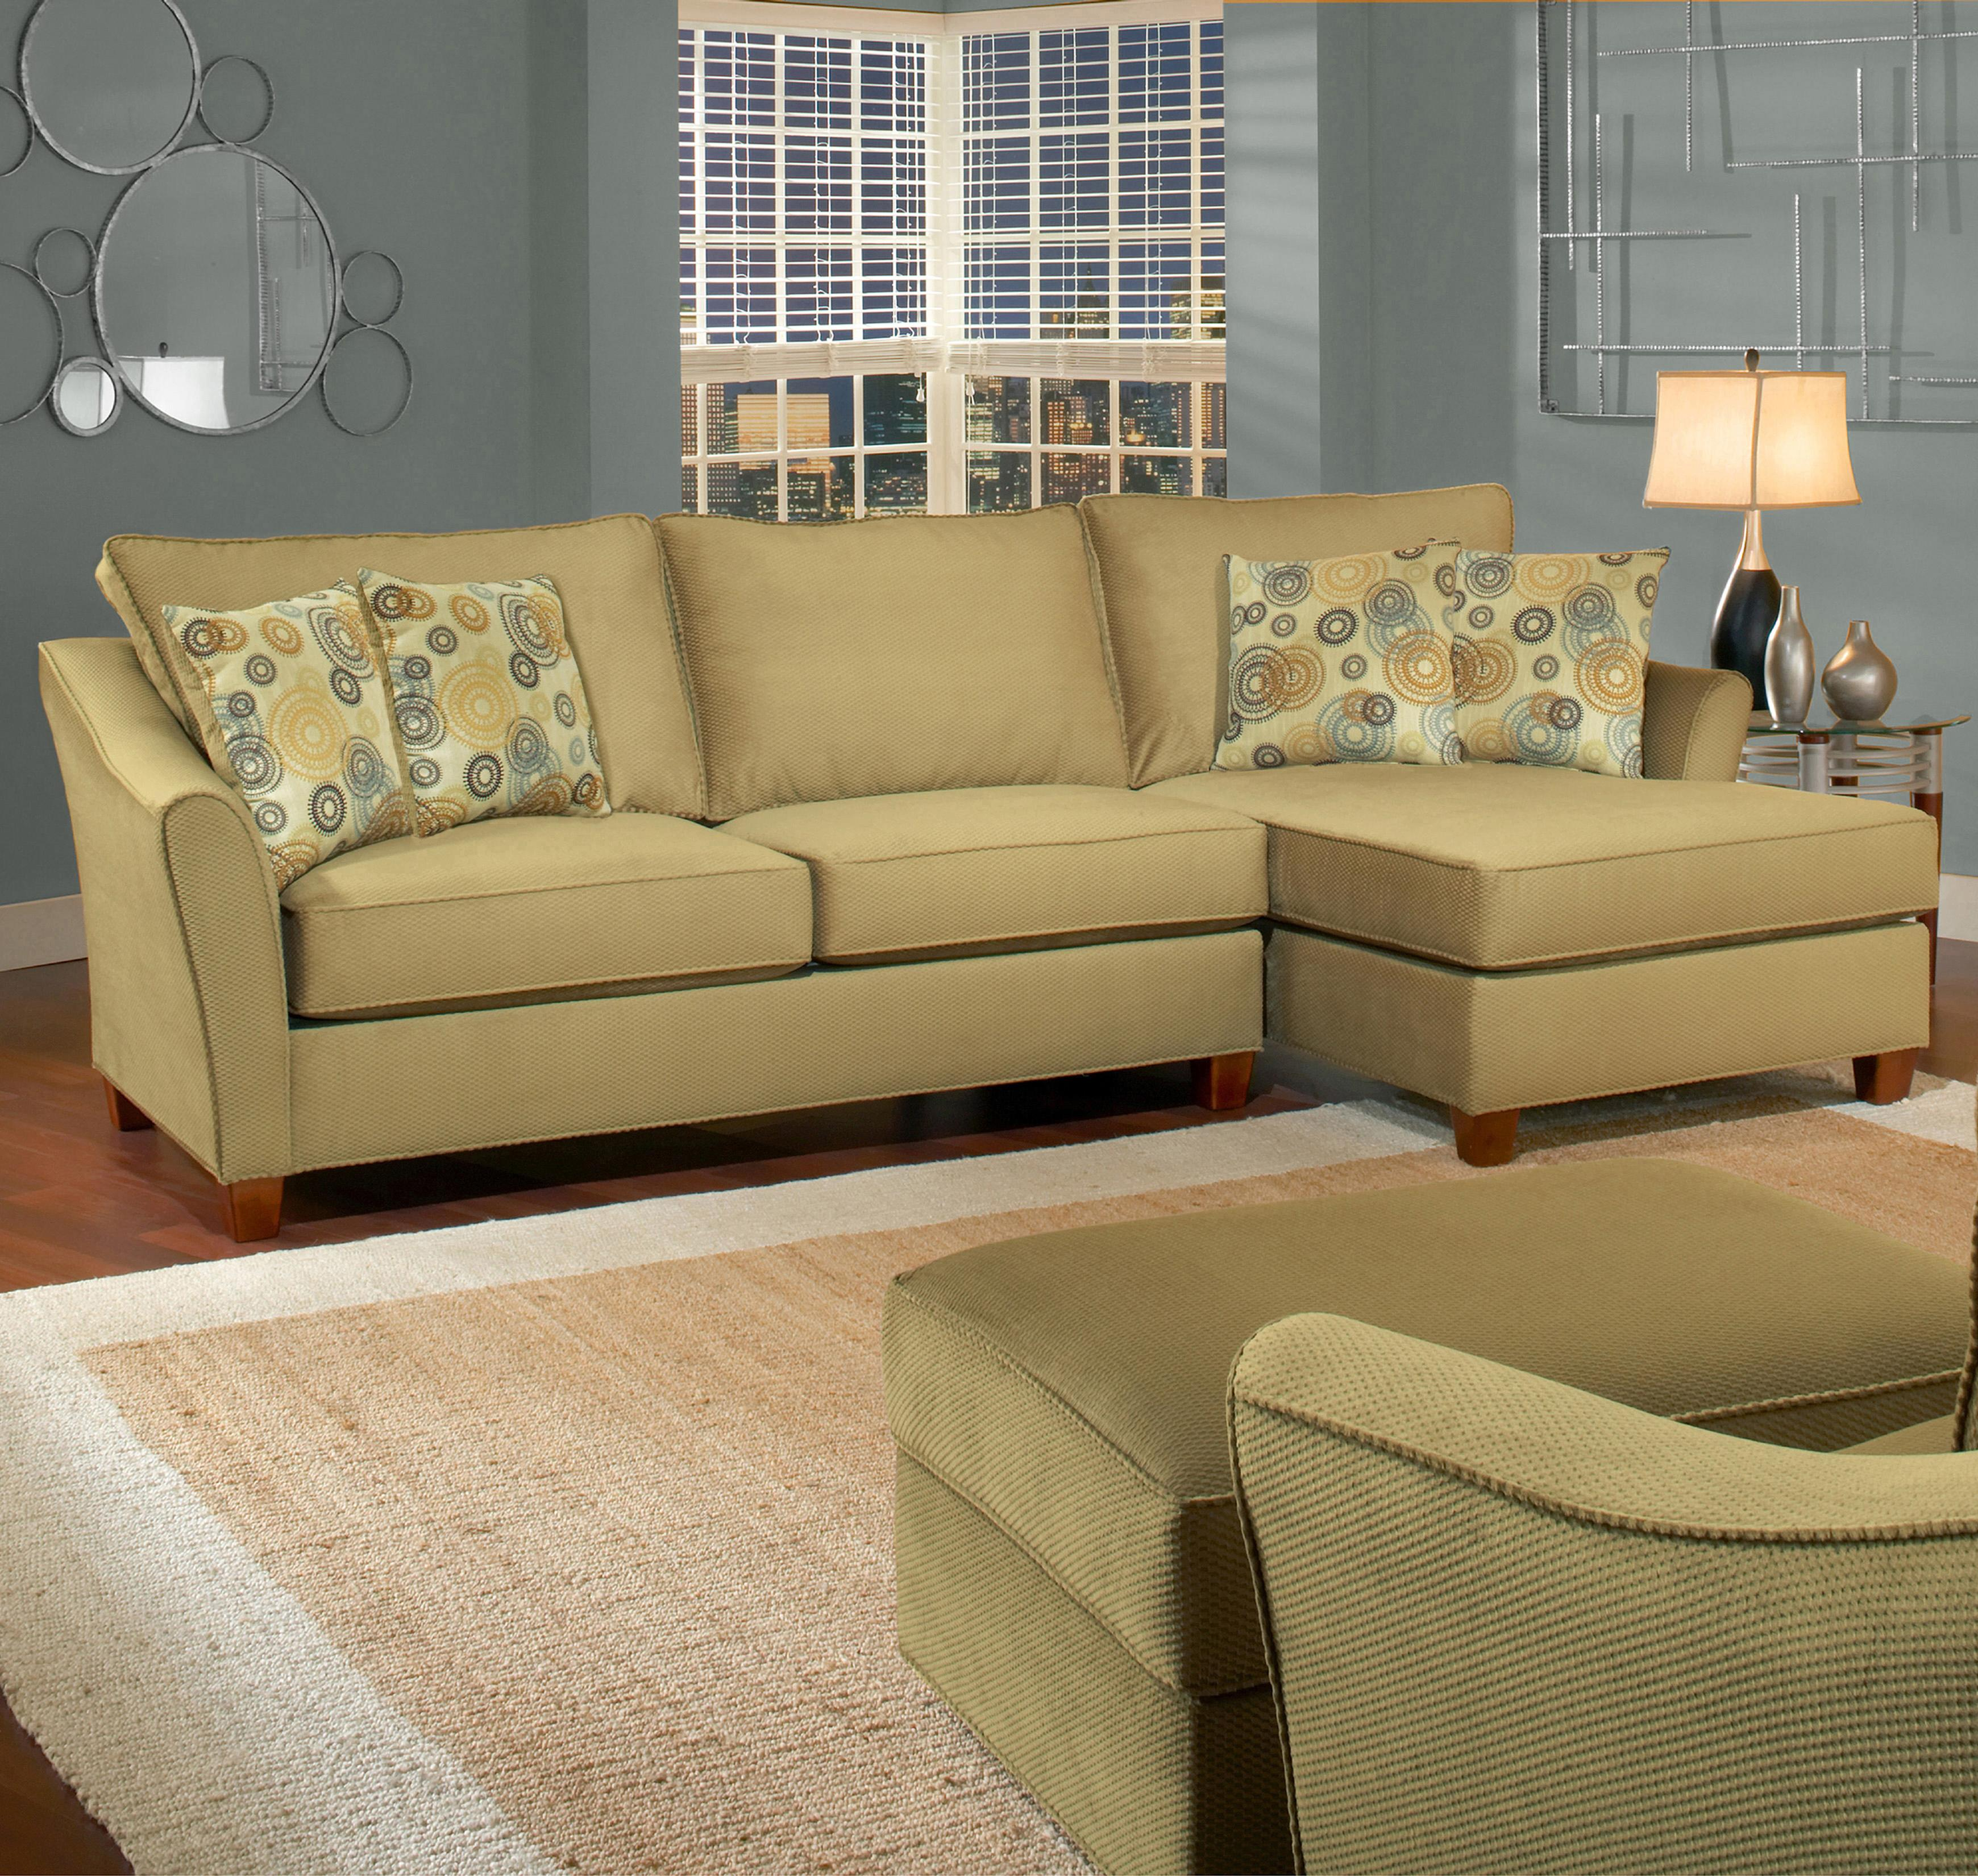 Belfort Essentials Fleetwood 3 Seat Sectional with Right Facing Chaise - Item Number: 5700-30L+24R